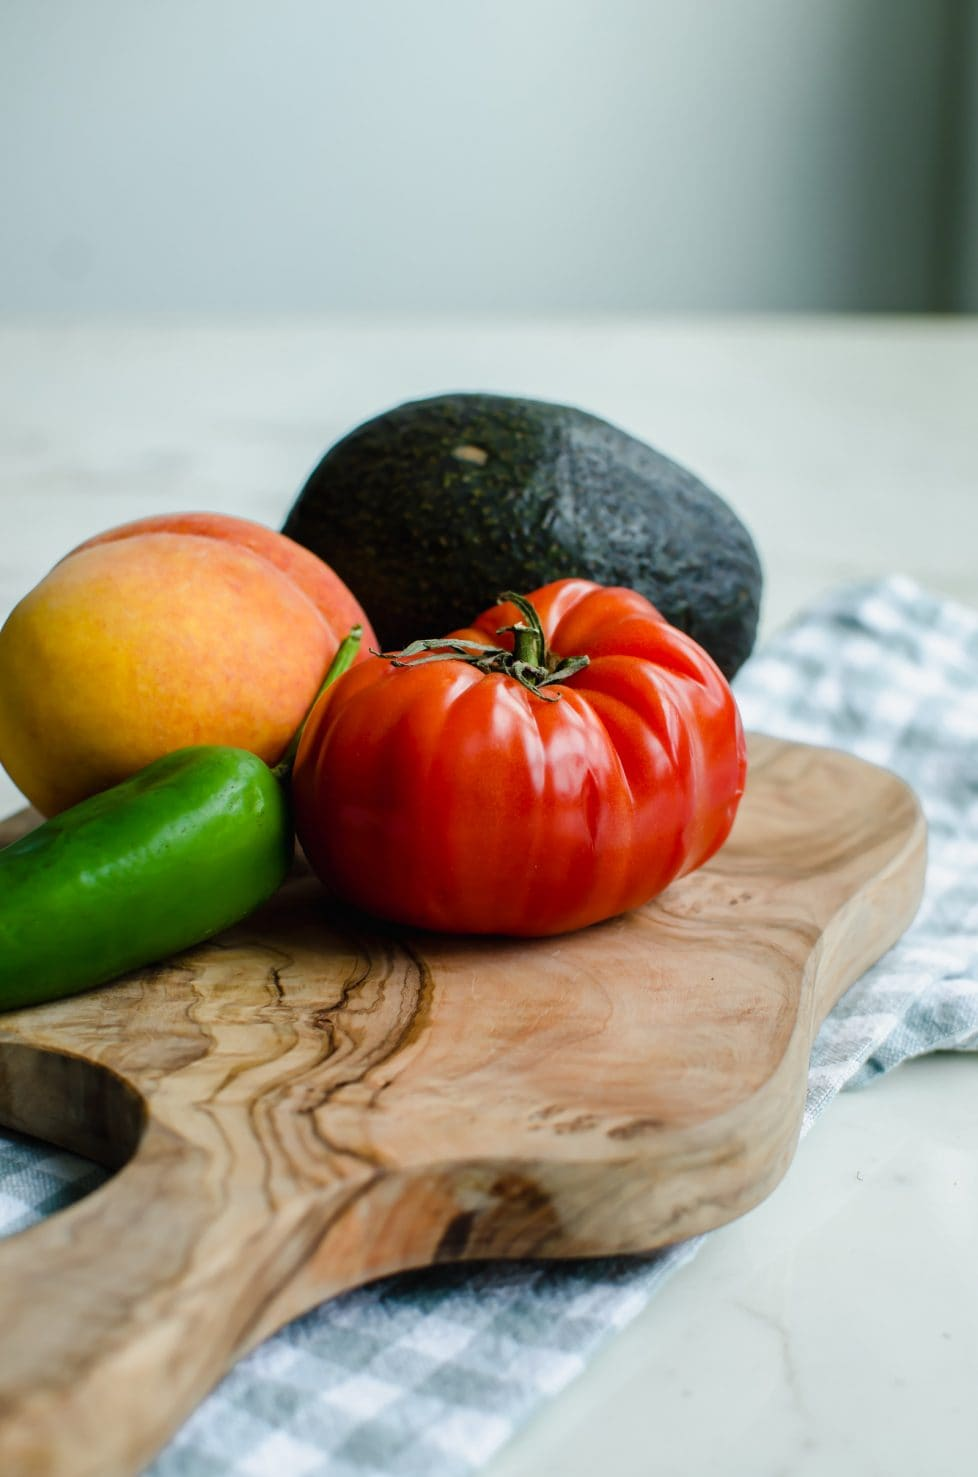 A cutting board with a fresh tomato, avocado, peach, and jalapeño.